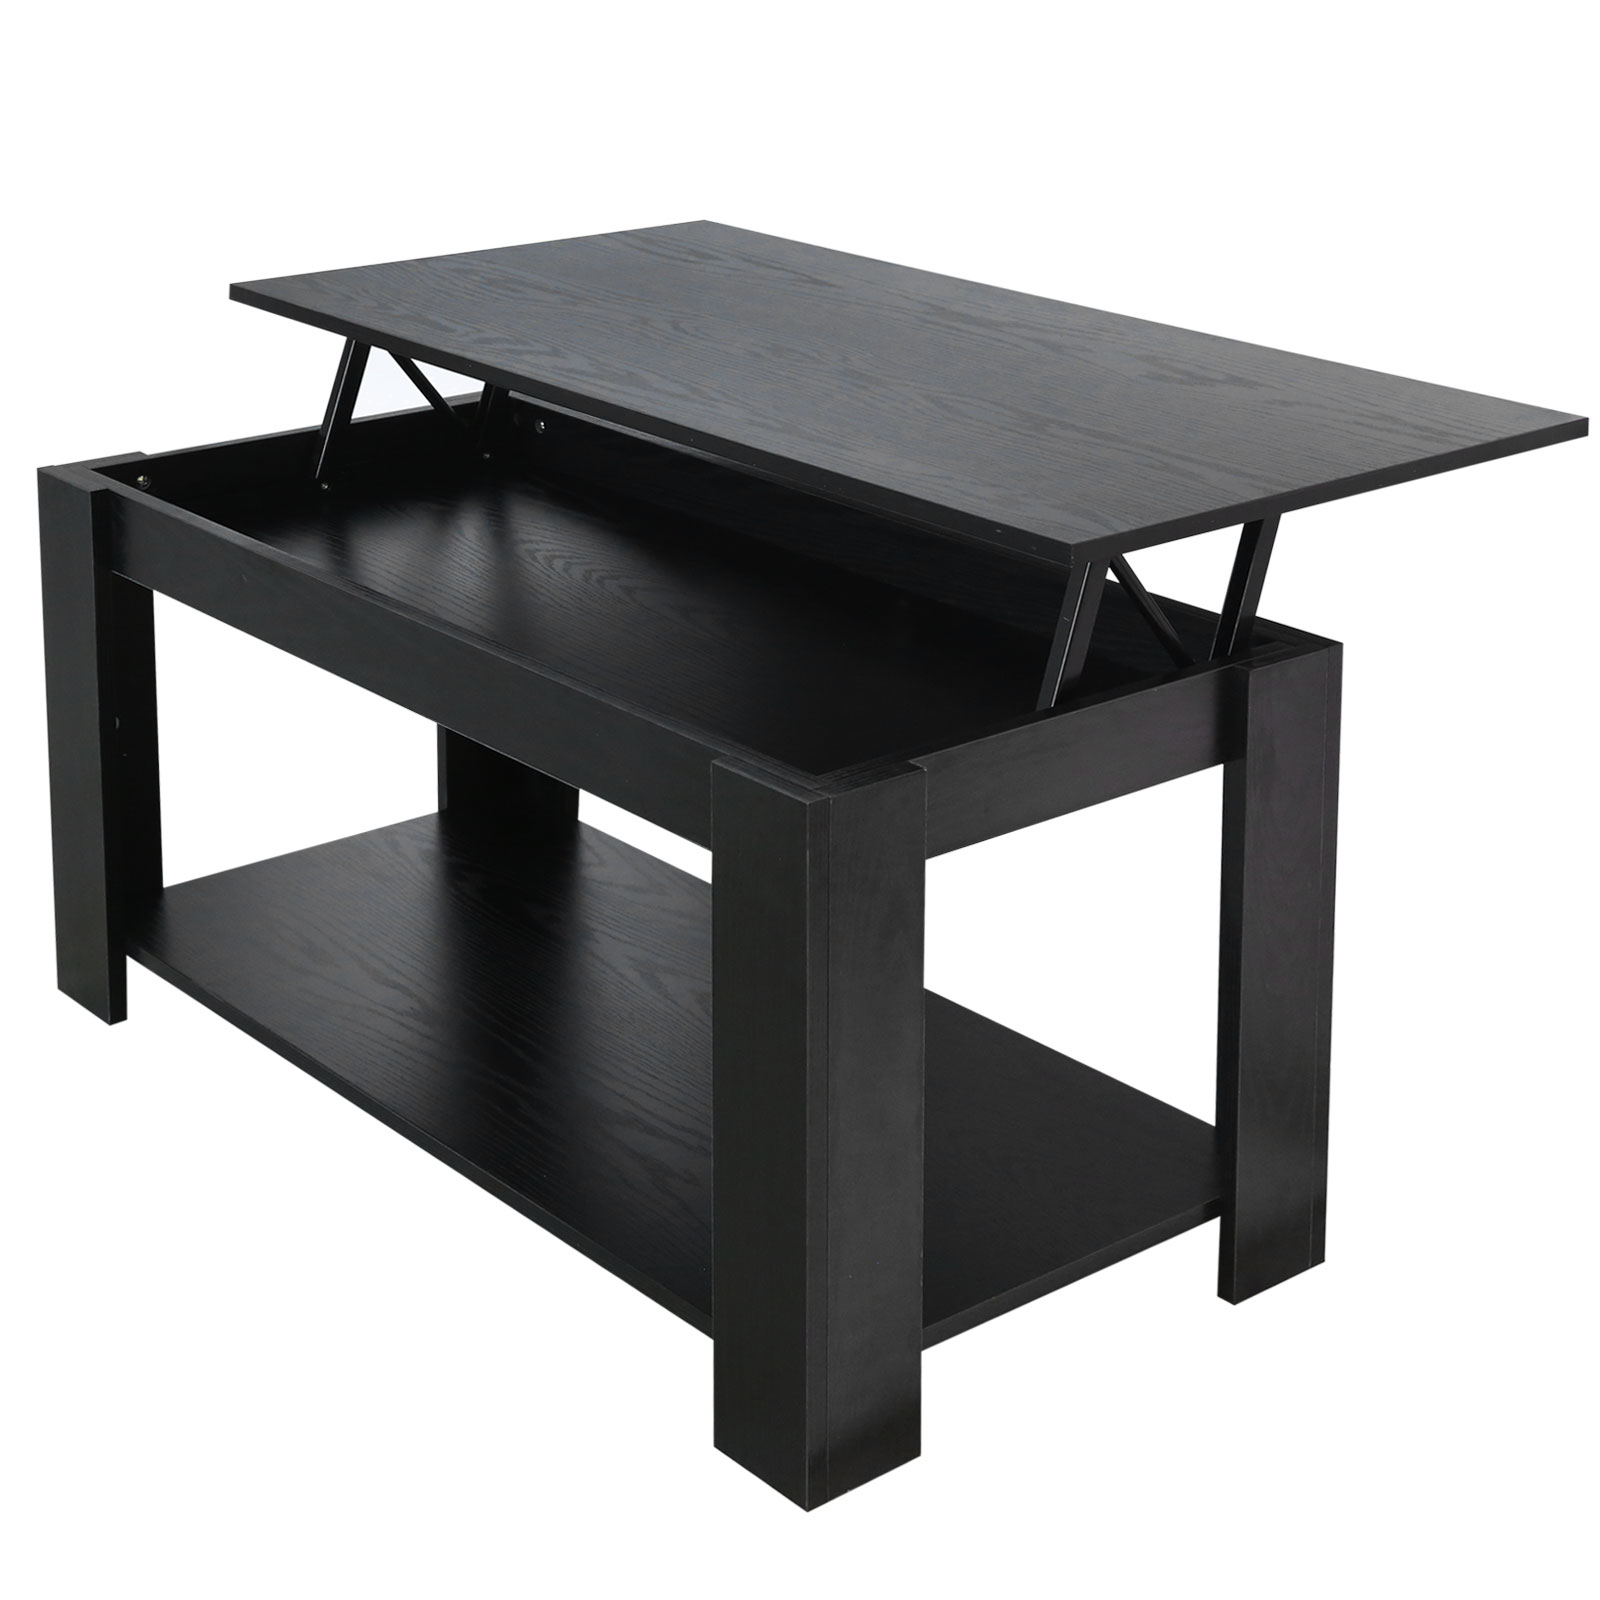 Black Coffee Table With Storage Uk: Modern Lift Up Top Coffee Table With Storage Shelf Living